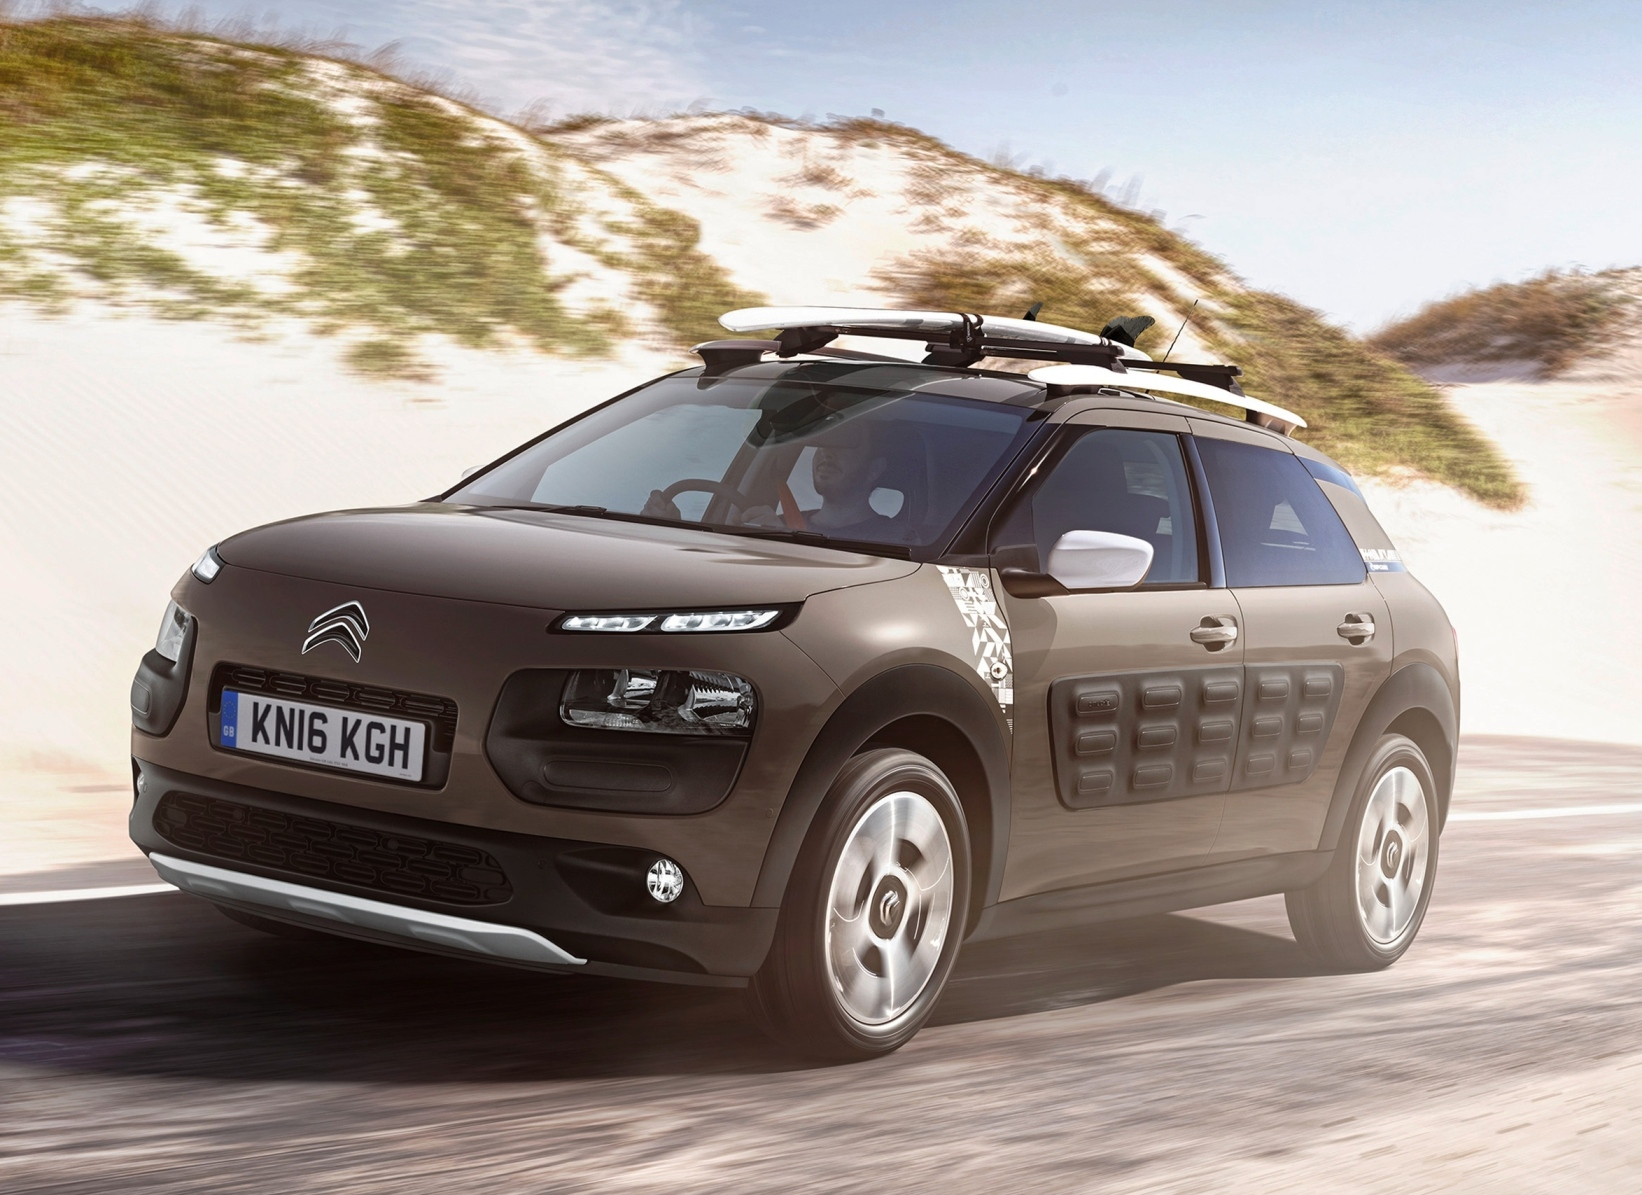 citroen-c4-cactus-rip-curl-side-front-action